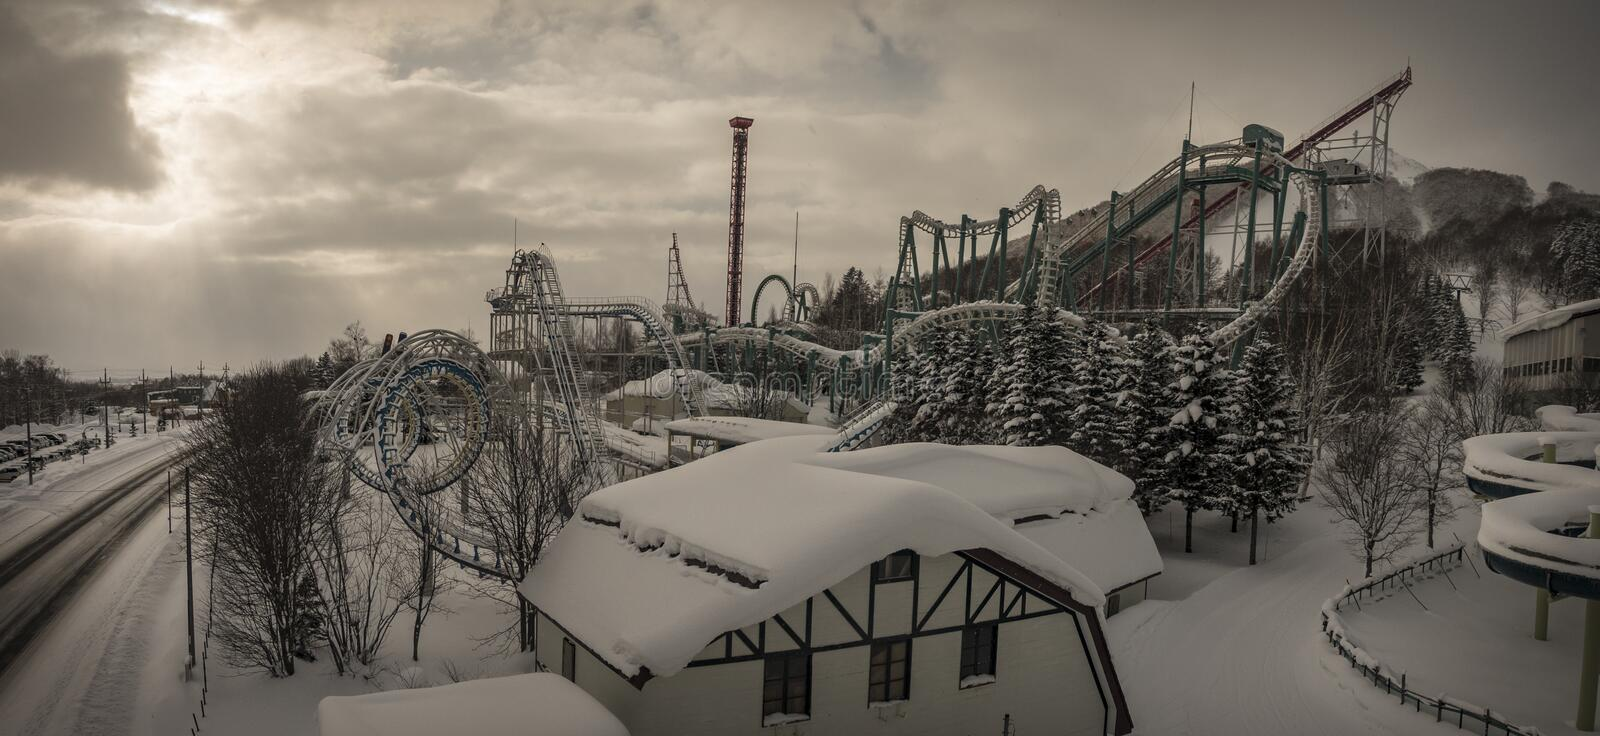 Theme park in winter covered in snow stock image